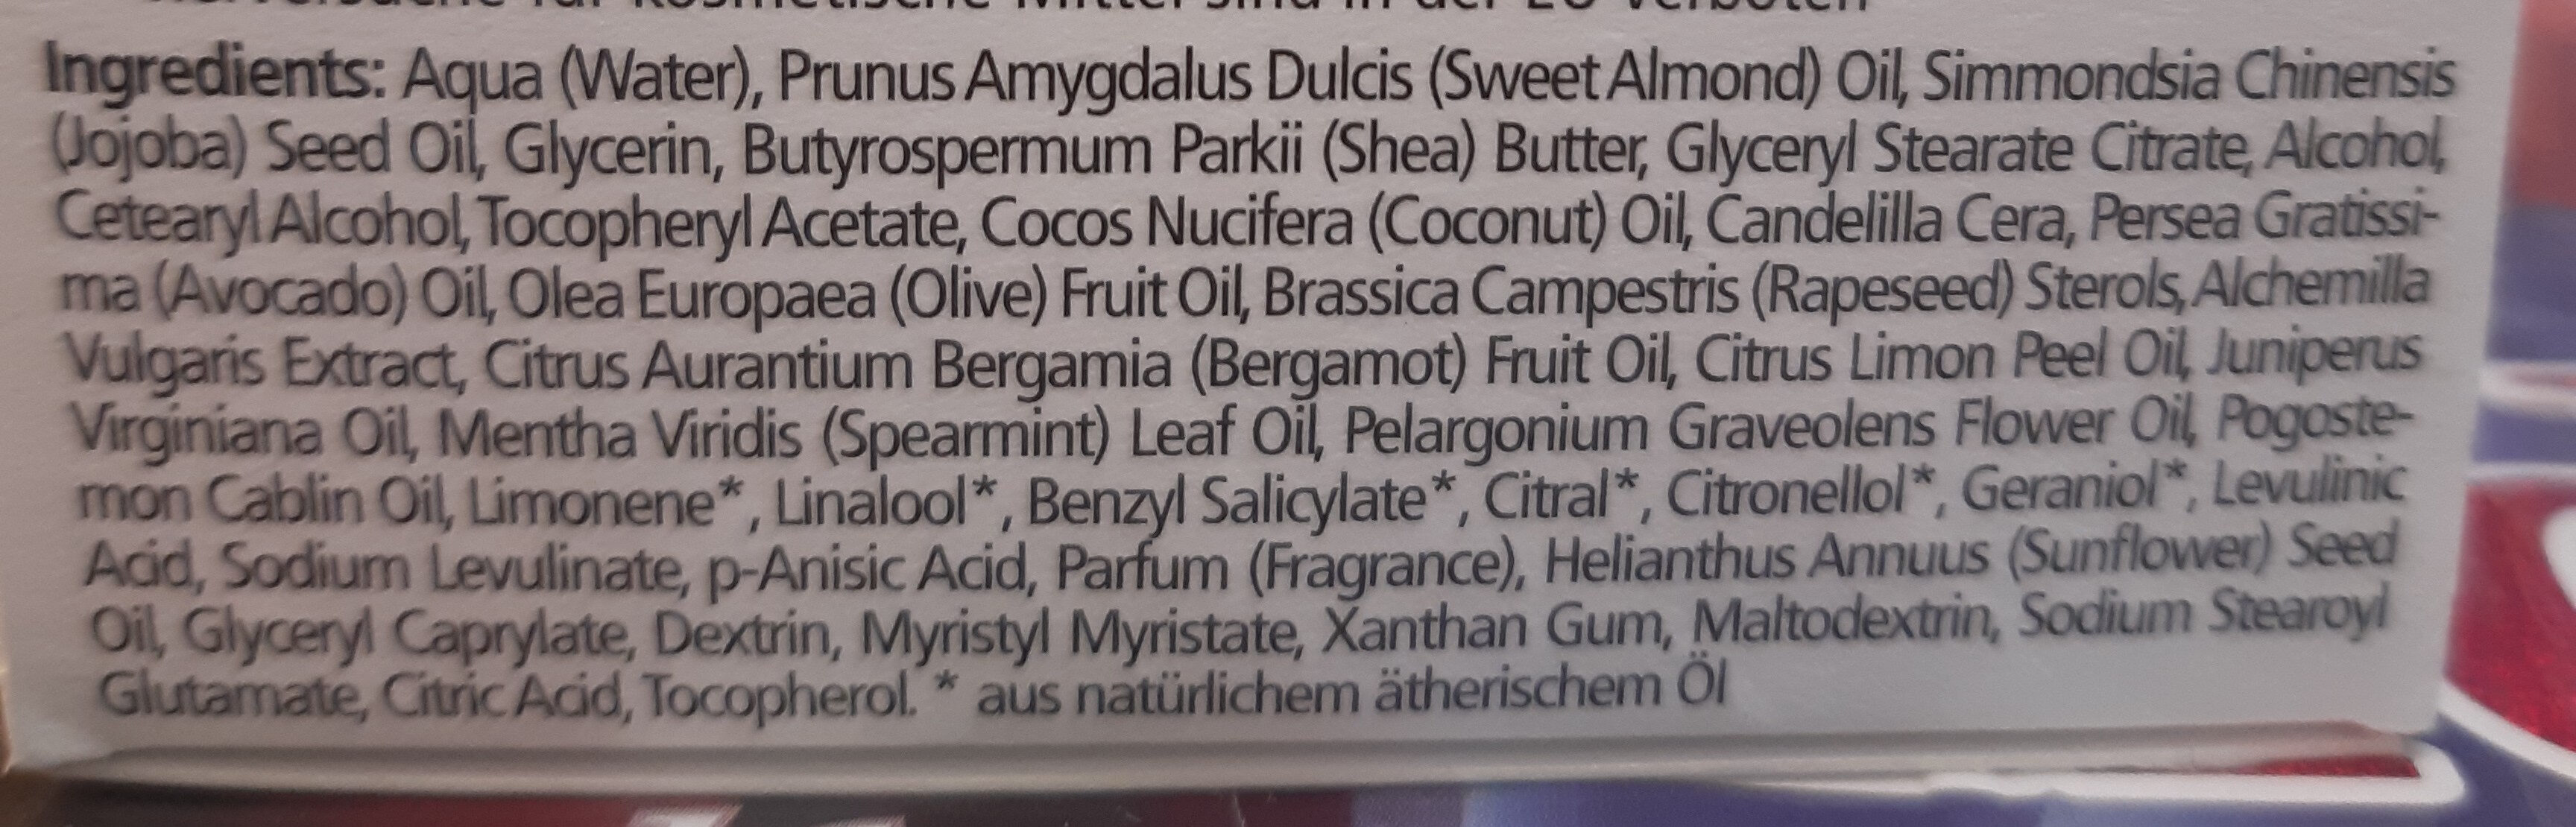 cosmétique naturelle - Ingredients